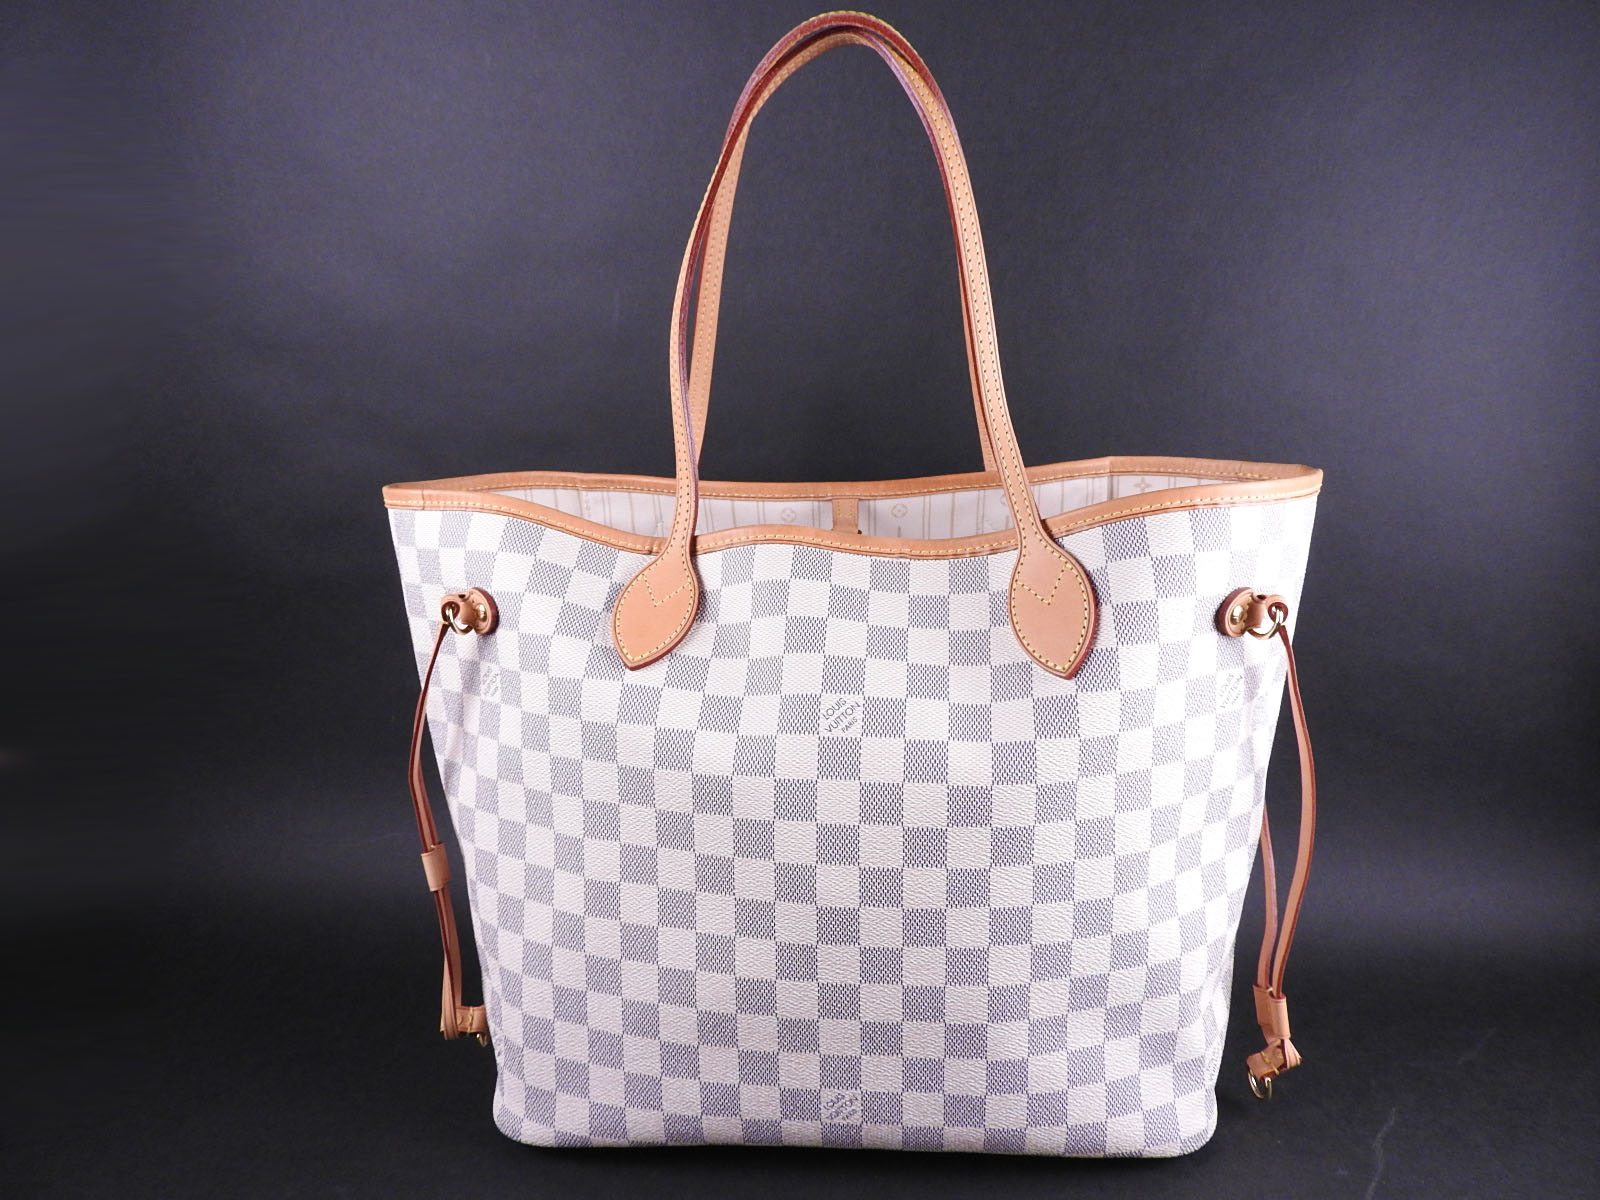 40dde1d38b7a Details about Auth LOUIS VUITTON Neverfull MM Damier Azur Tote Bag Shoulder  Bag N51107 A-9067